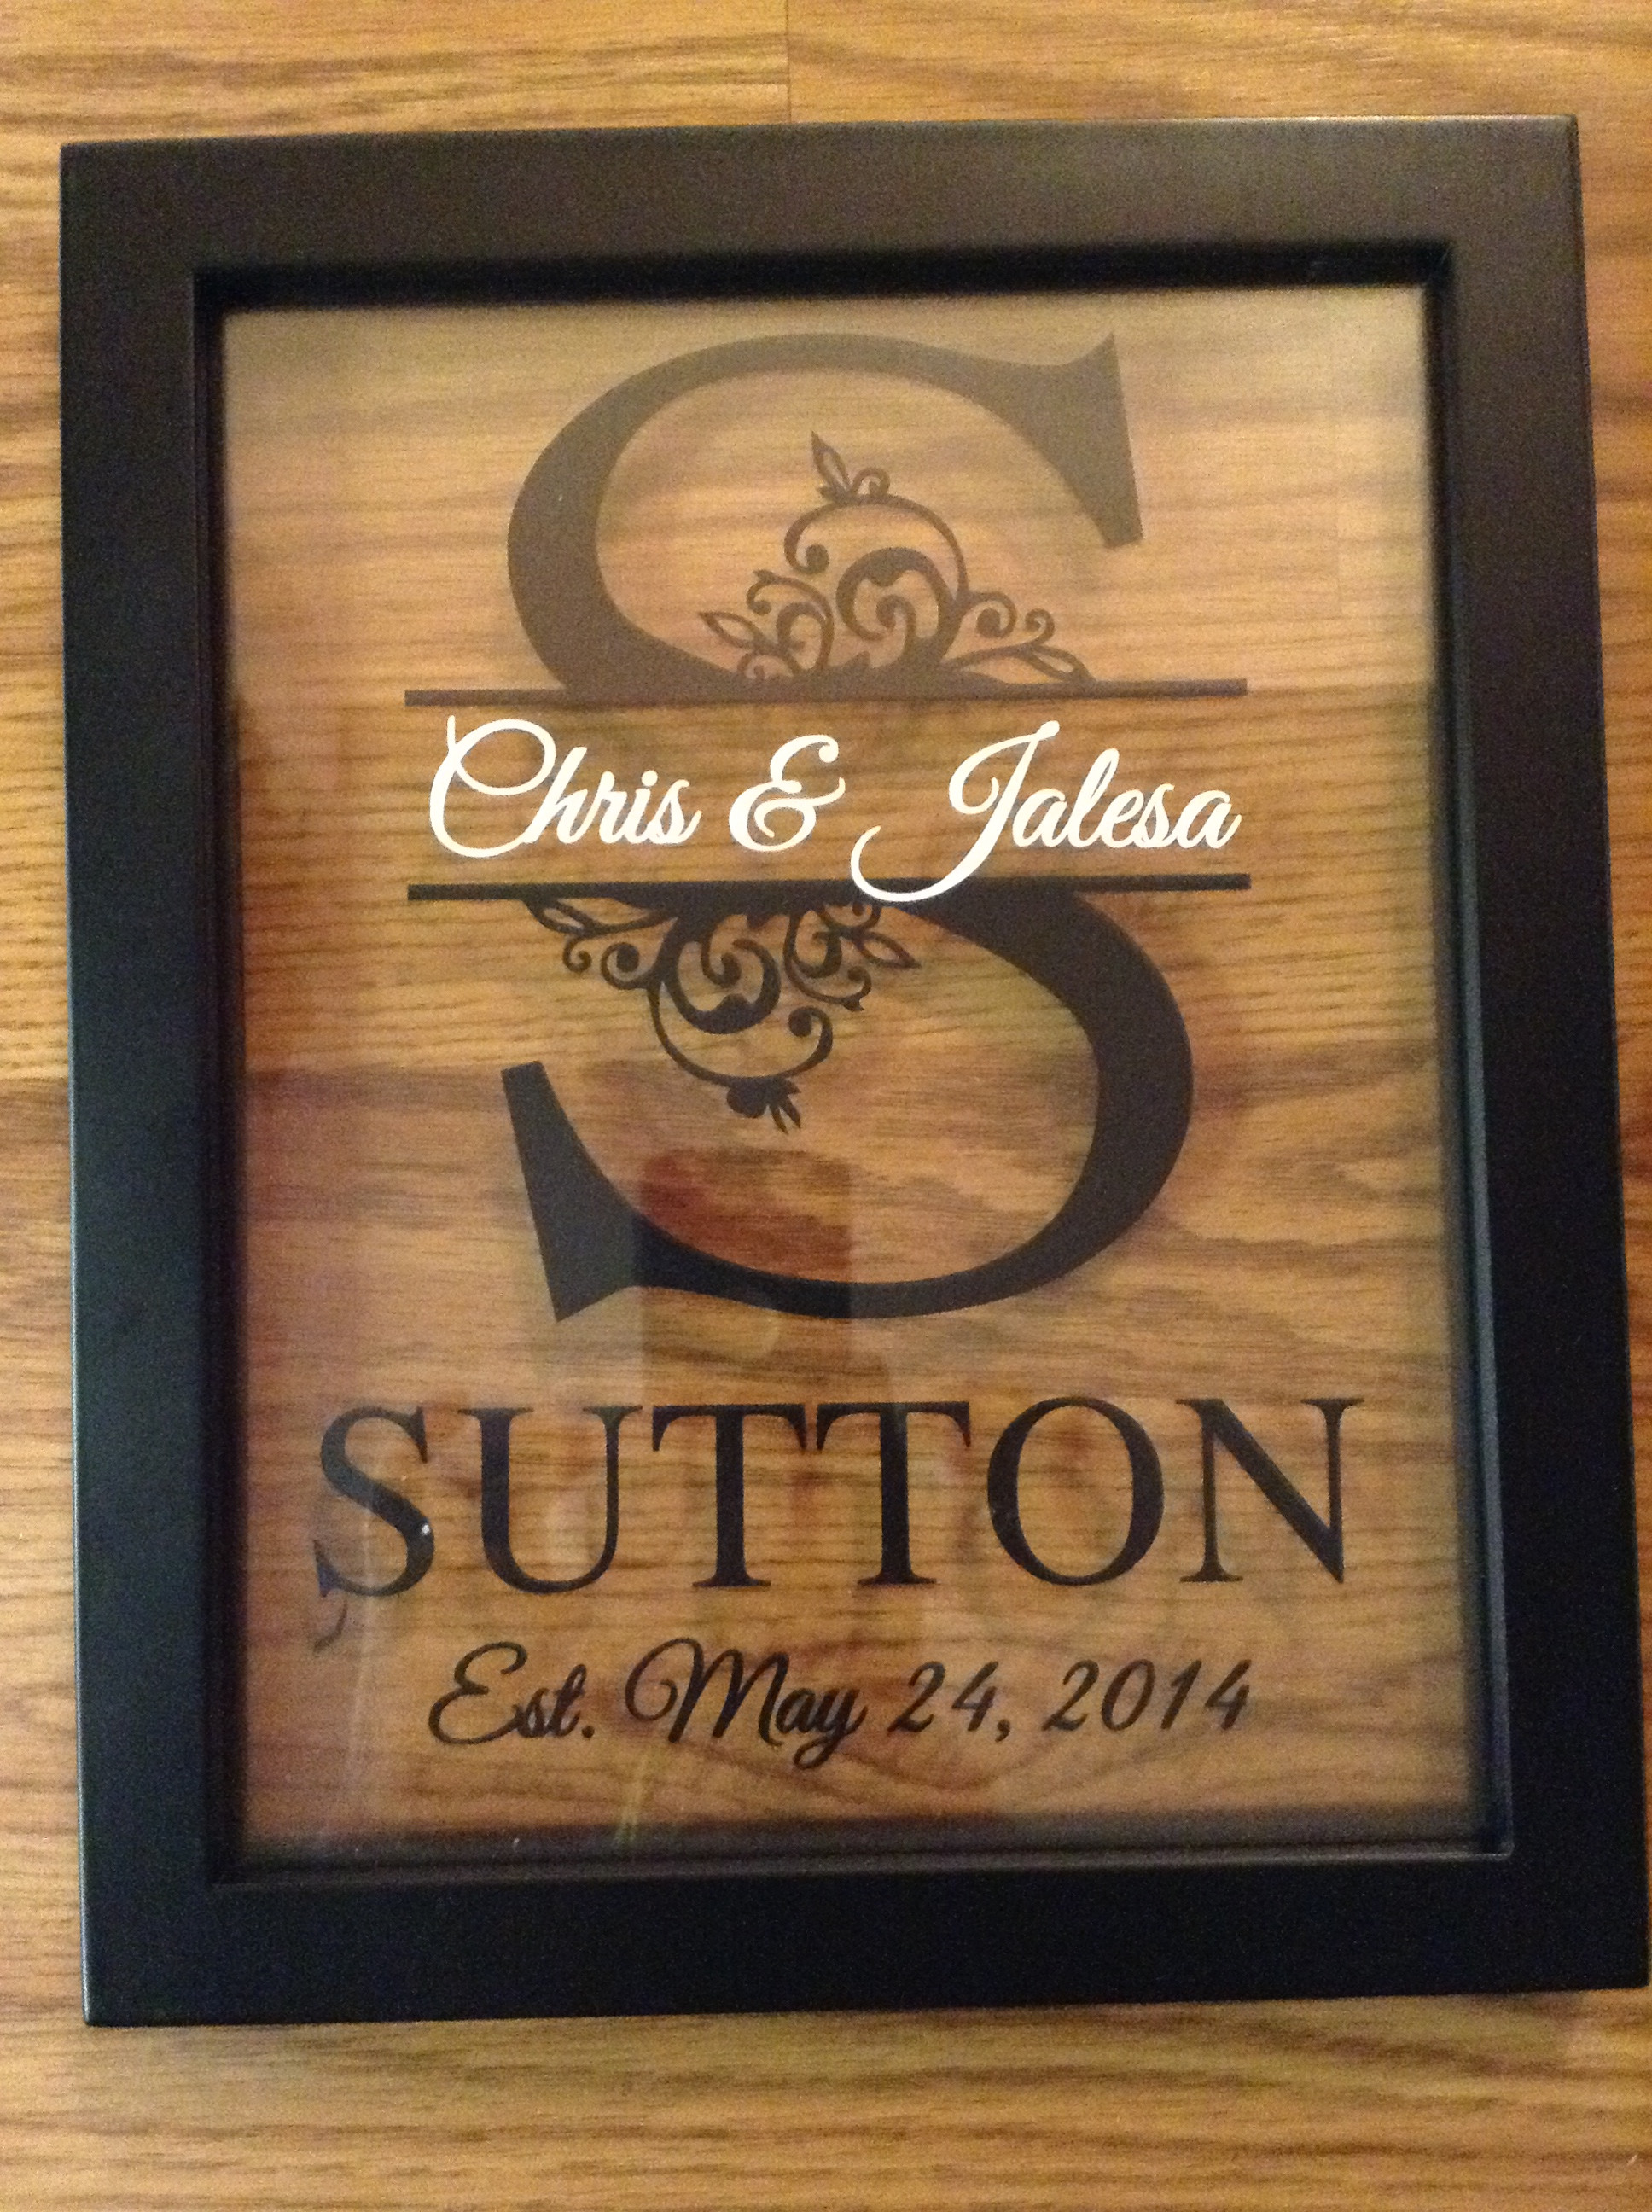 Best ideas about Personal Wedding Gift Ideas . Save or Pin Personalized Last Name Floating Frame 8X10 on Storenvy Now.